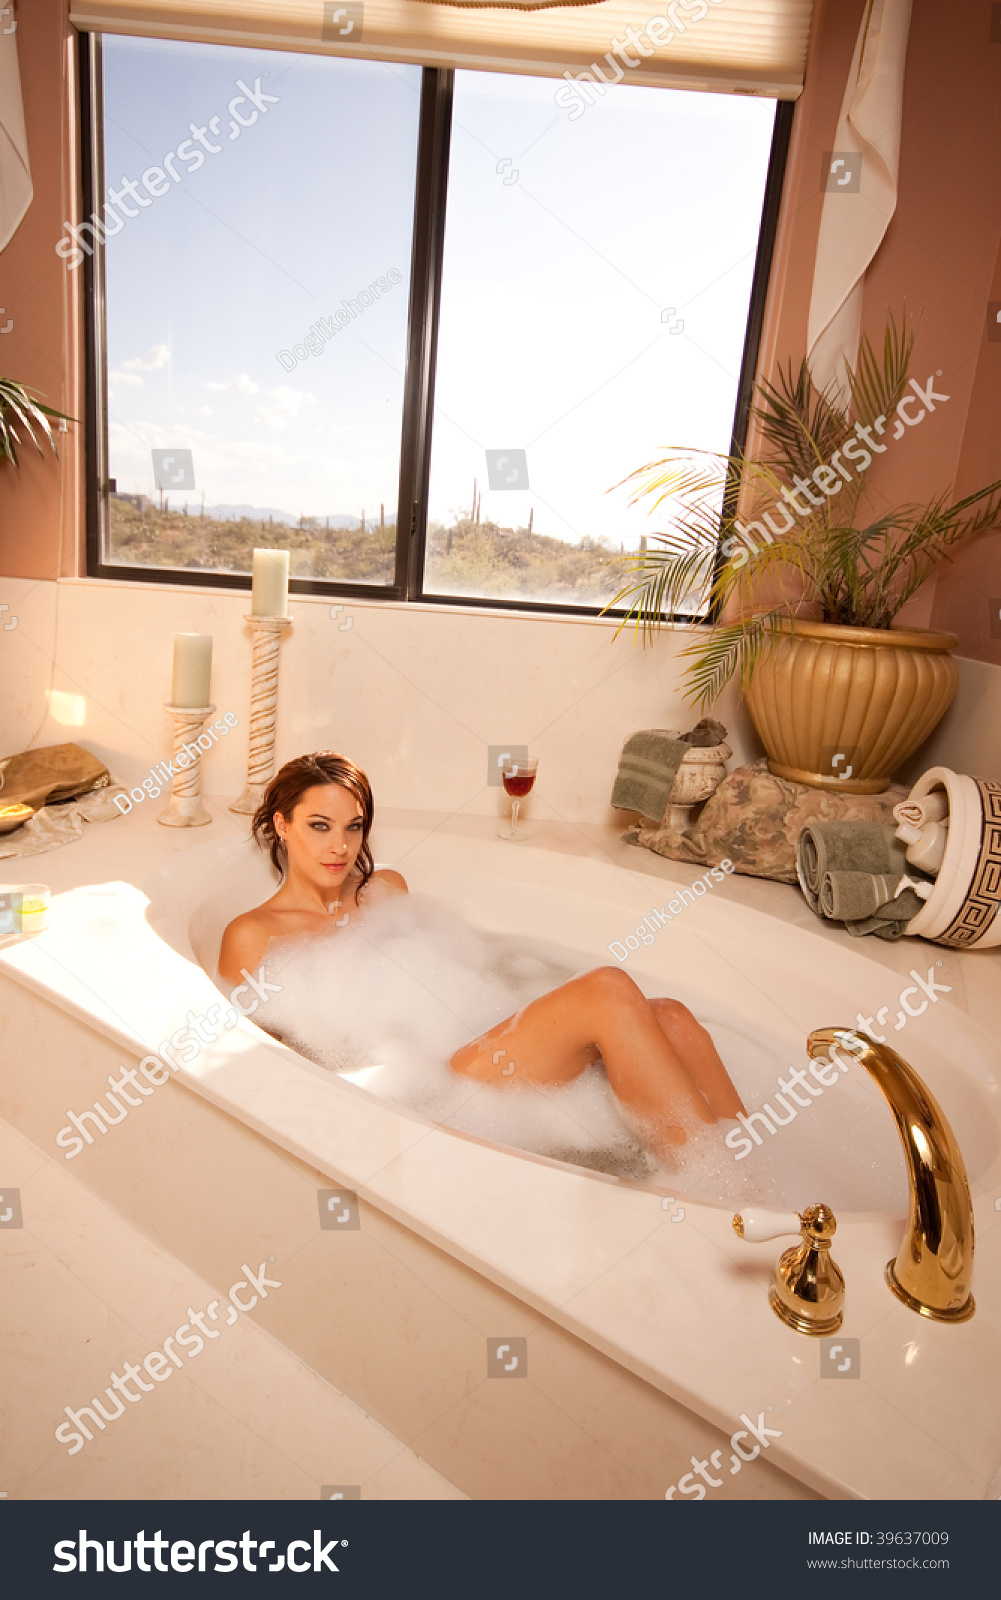 Woman Relaxing Bathtub Stock Photo (100% Legal Protection) 39637009 ...